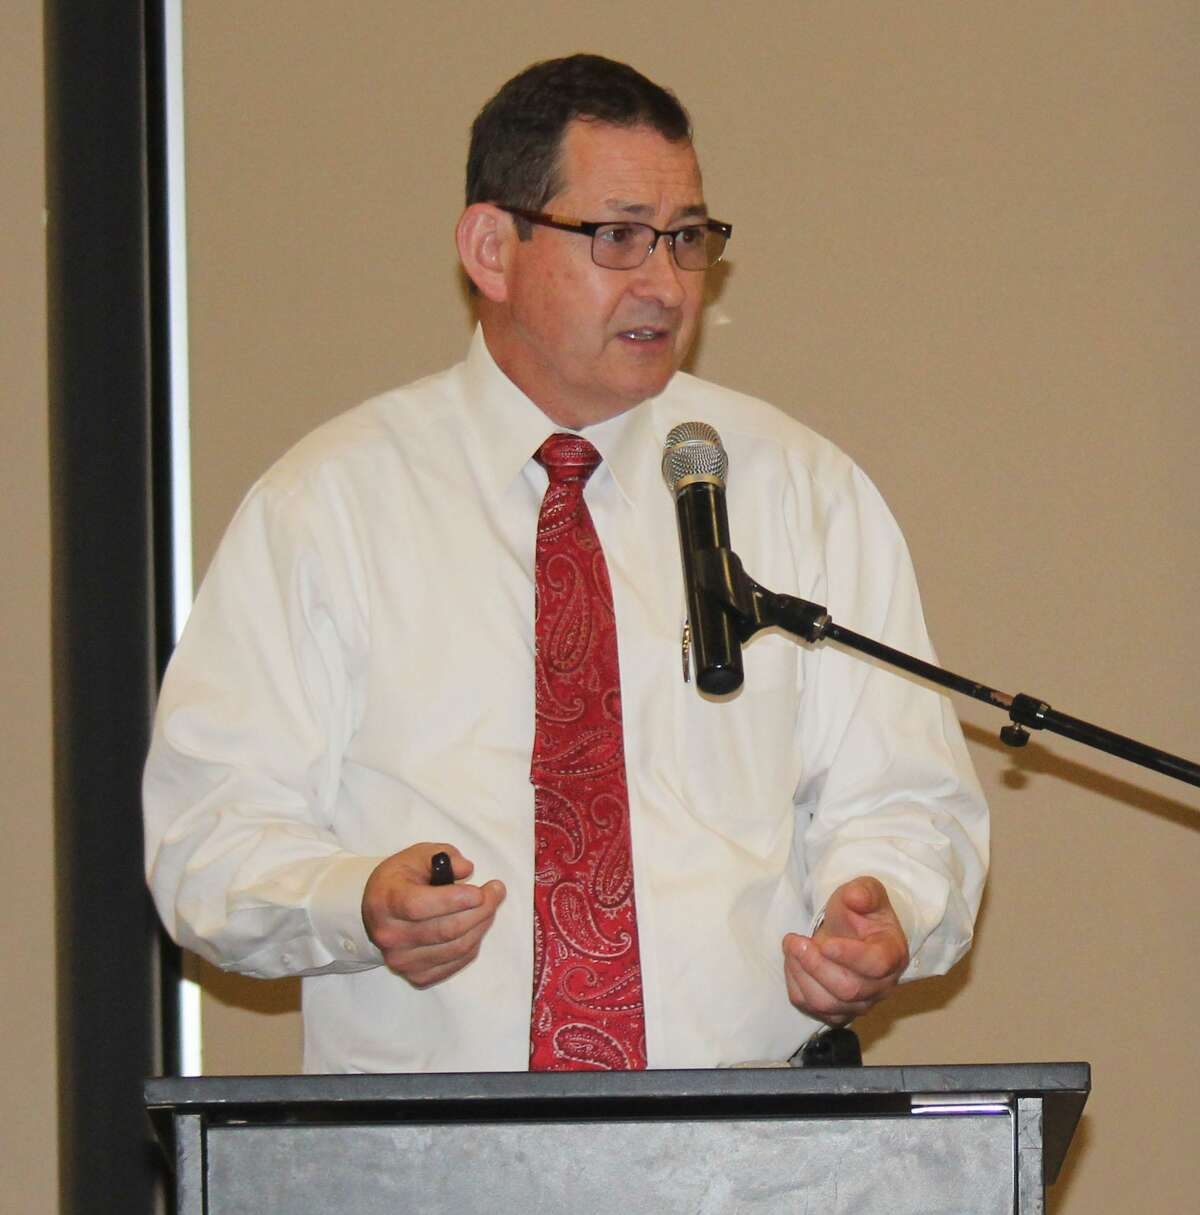 Alan Clark of the Houston-Galveston Area Council spoke at the Greater Cleveland Chamber of Commerce Luncheon on July 5 and discussed the council's functions along with its projects and how they impact the Cleveland area.